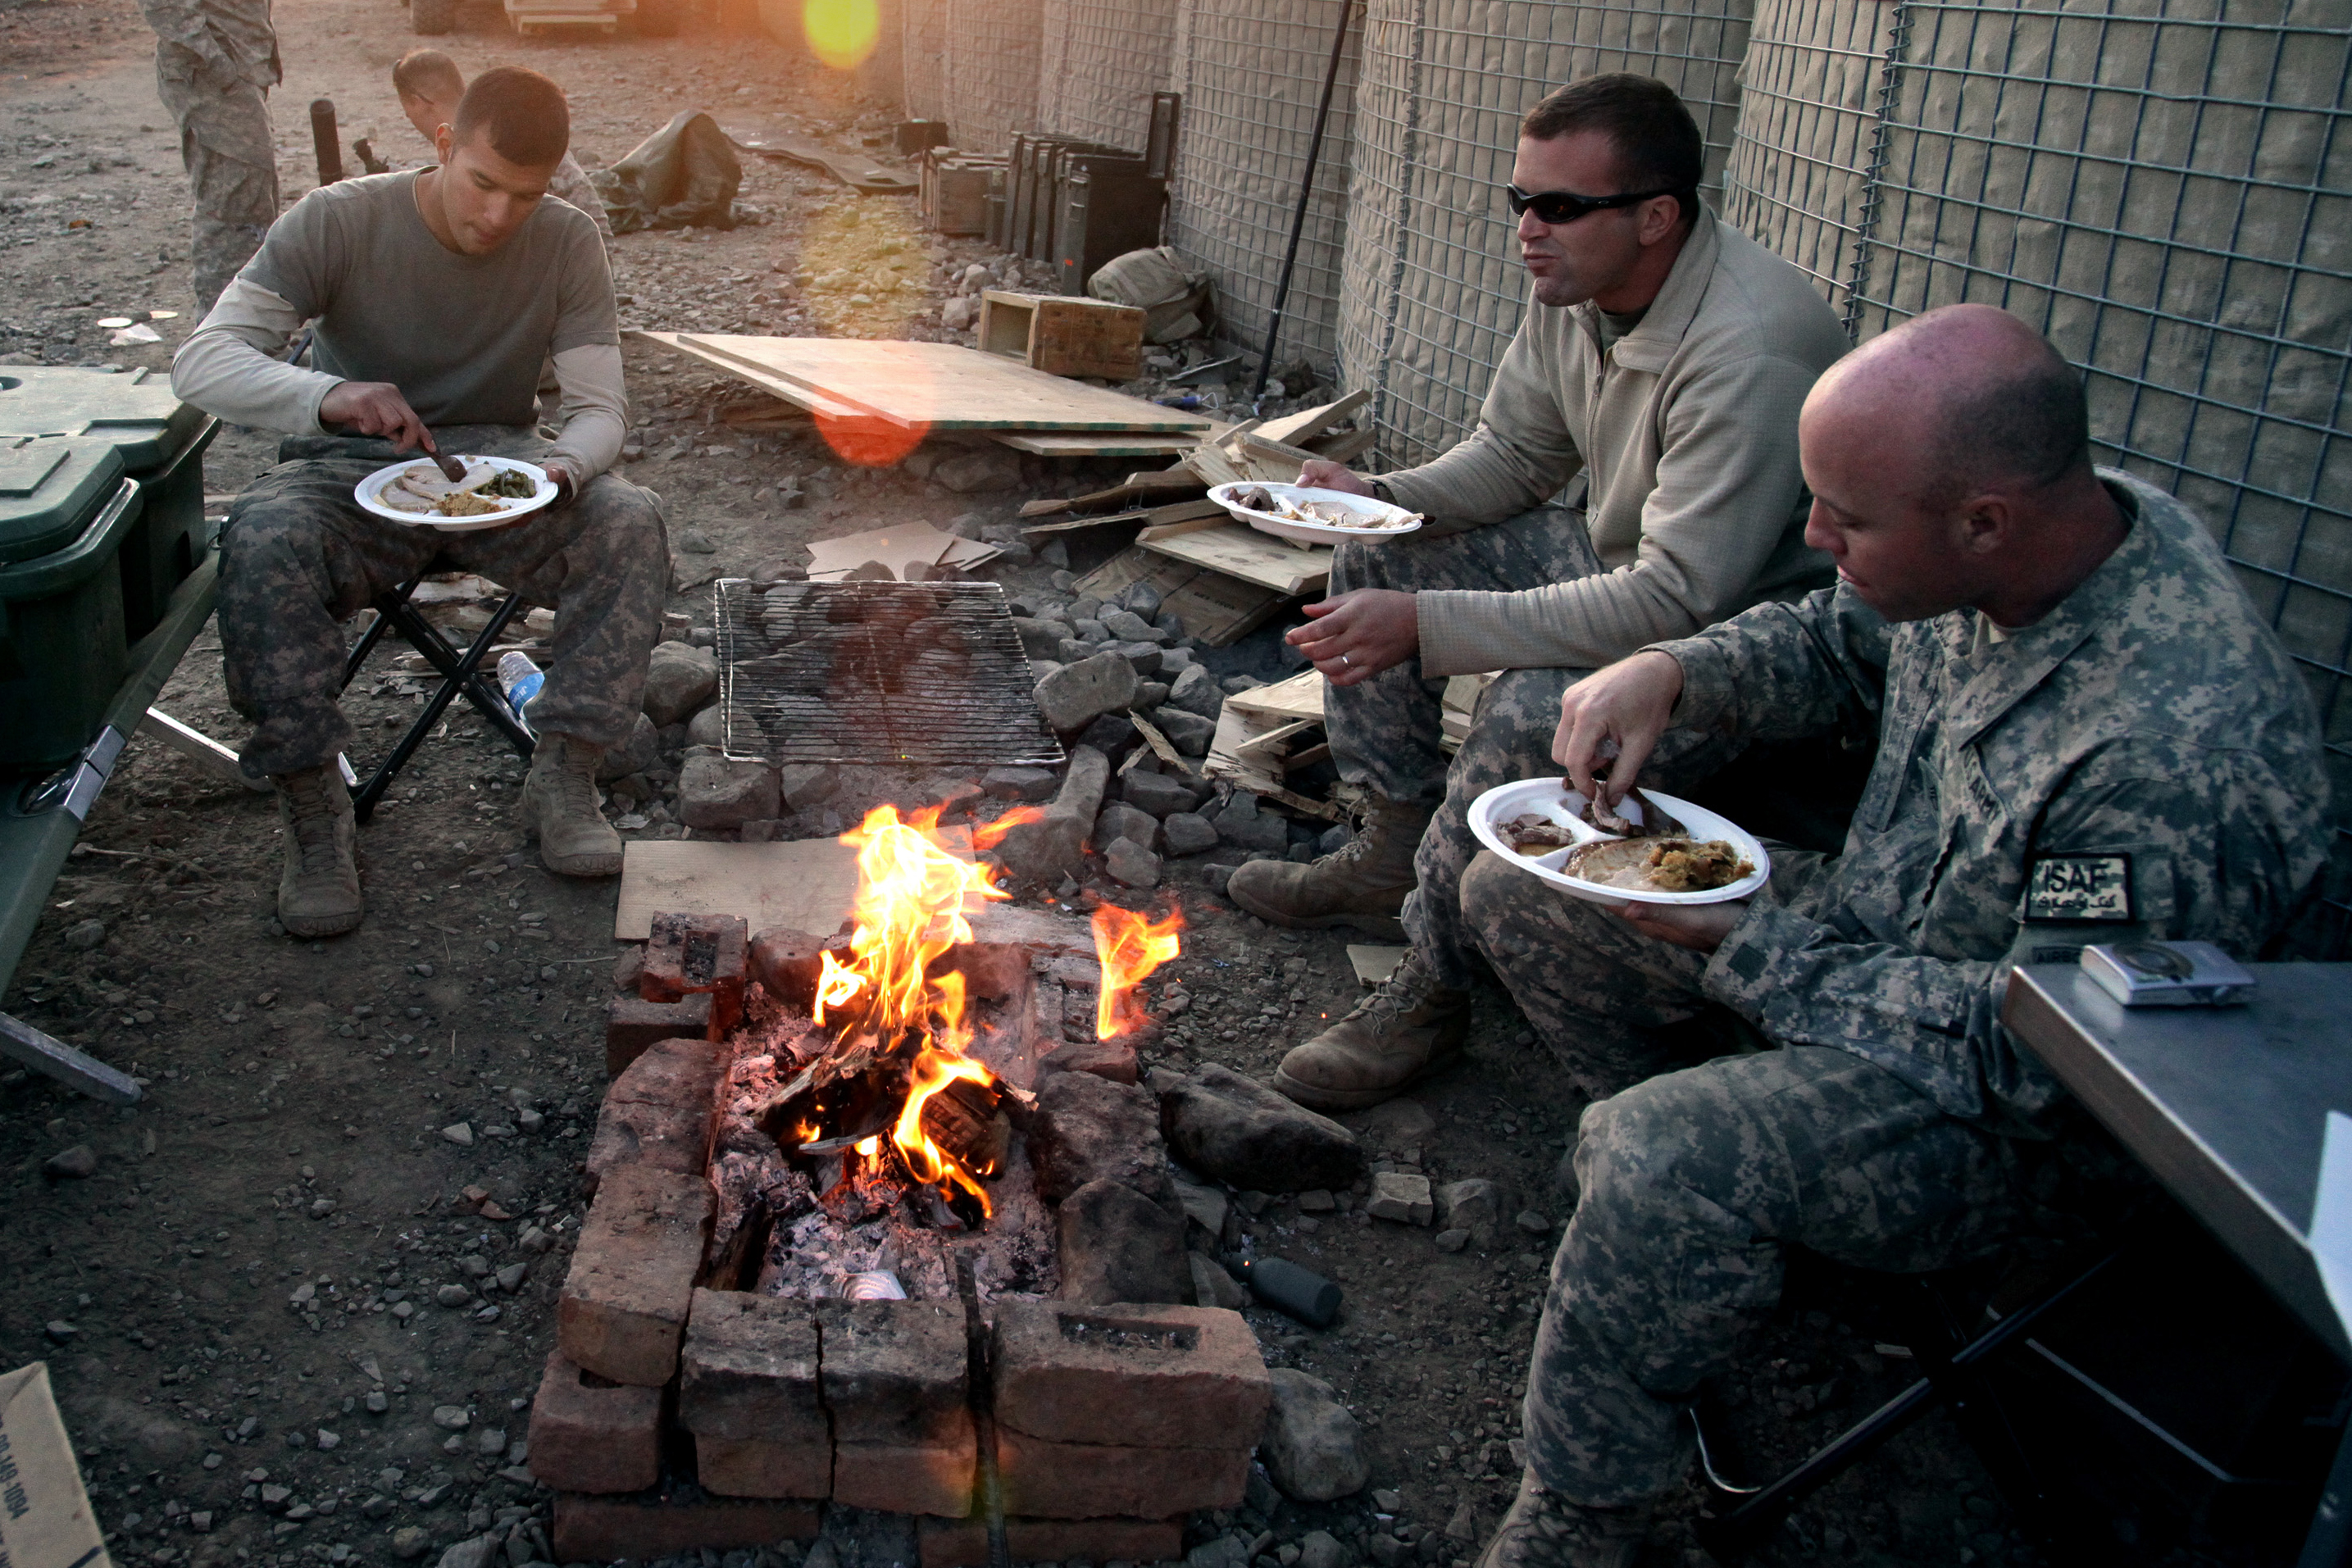 http://upload.wikimedia.org/wikipedia/commons/f/f0/Flickr_-_The_U.S._Army_-_Thanksgiving_on_Combat_Outpost_Cherkatah%2C_Khowst_province%2C_Afghanistan.jpg